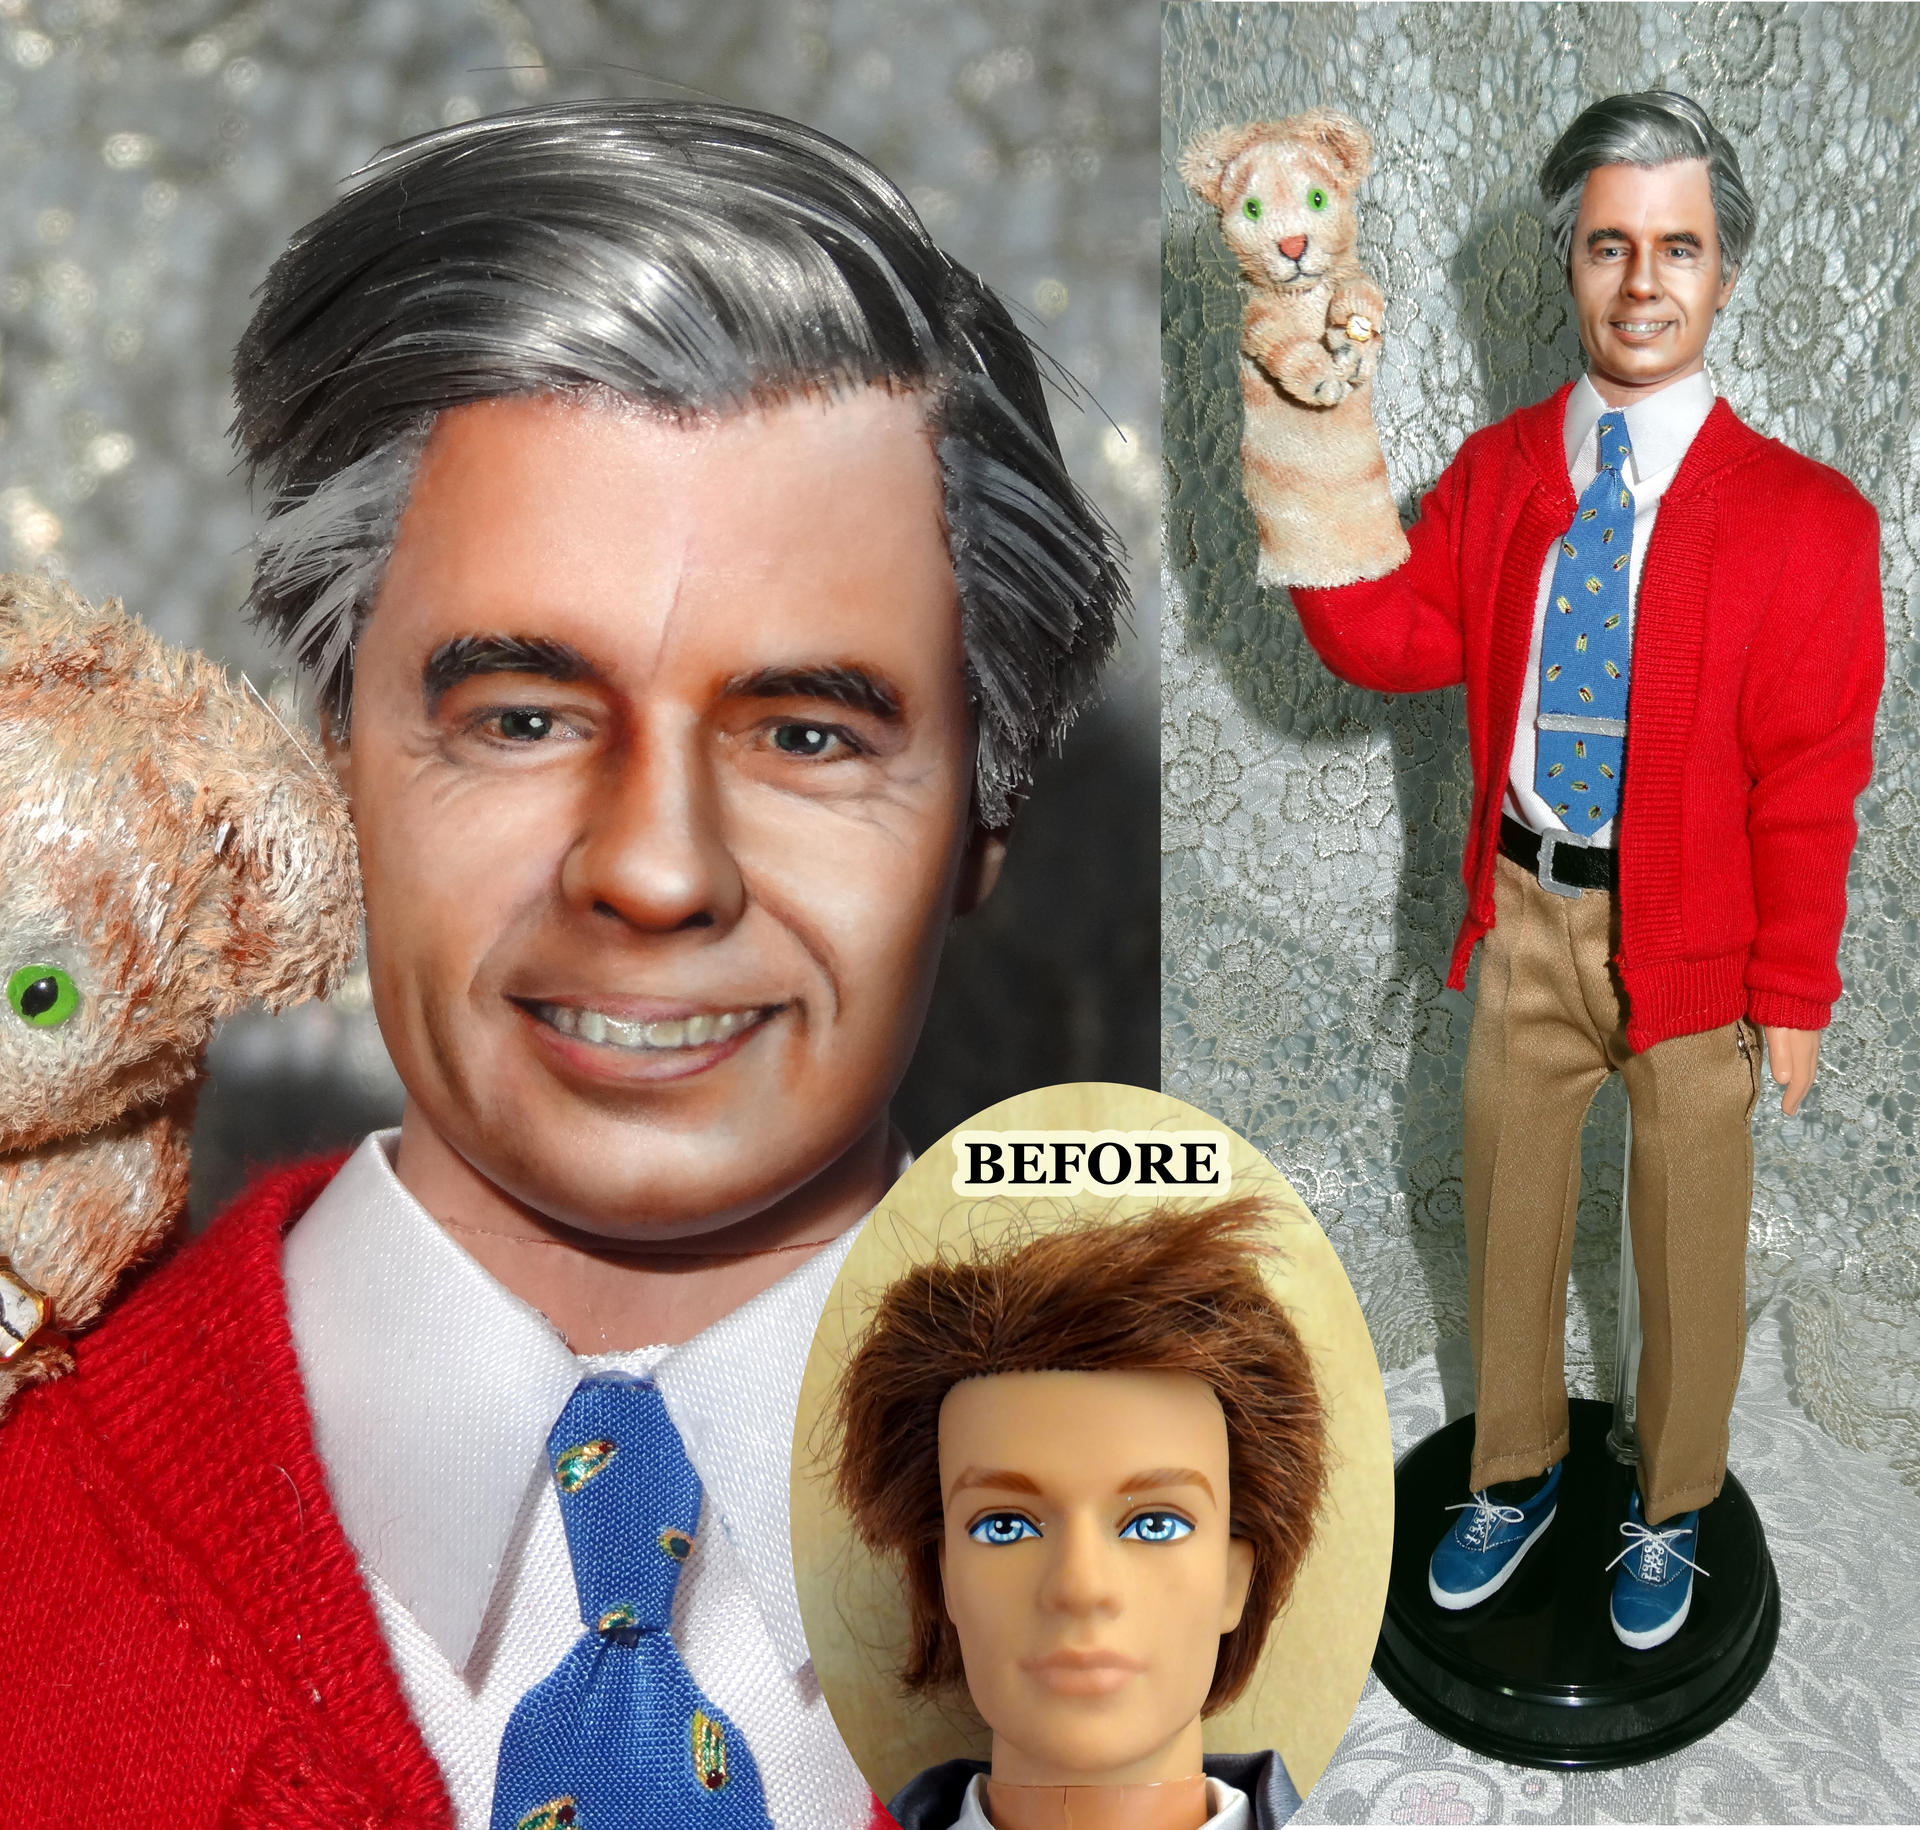 Mr Rogers Ken Doll Repaint Ooak With Daniel Tiger By Olianp On Deviantart